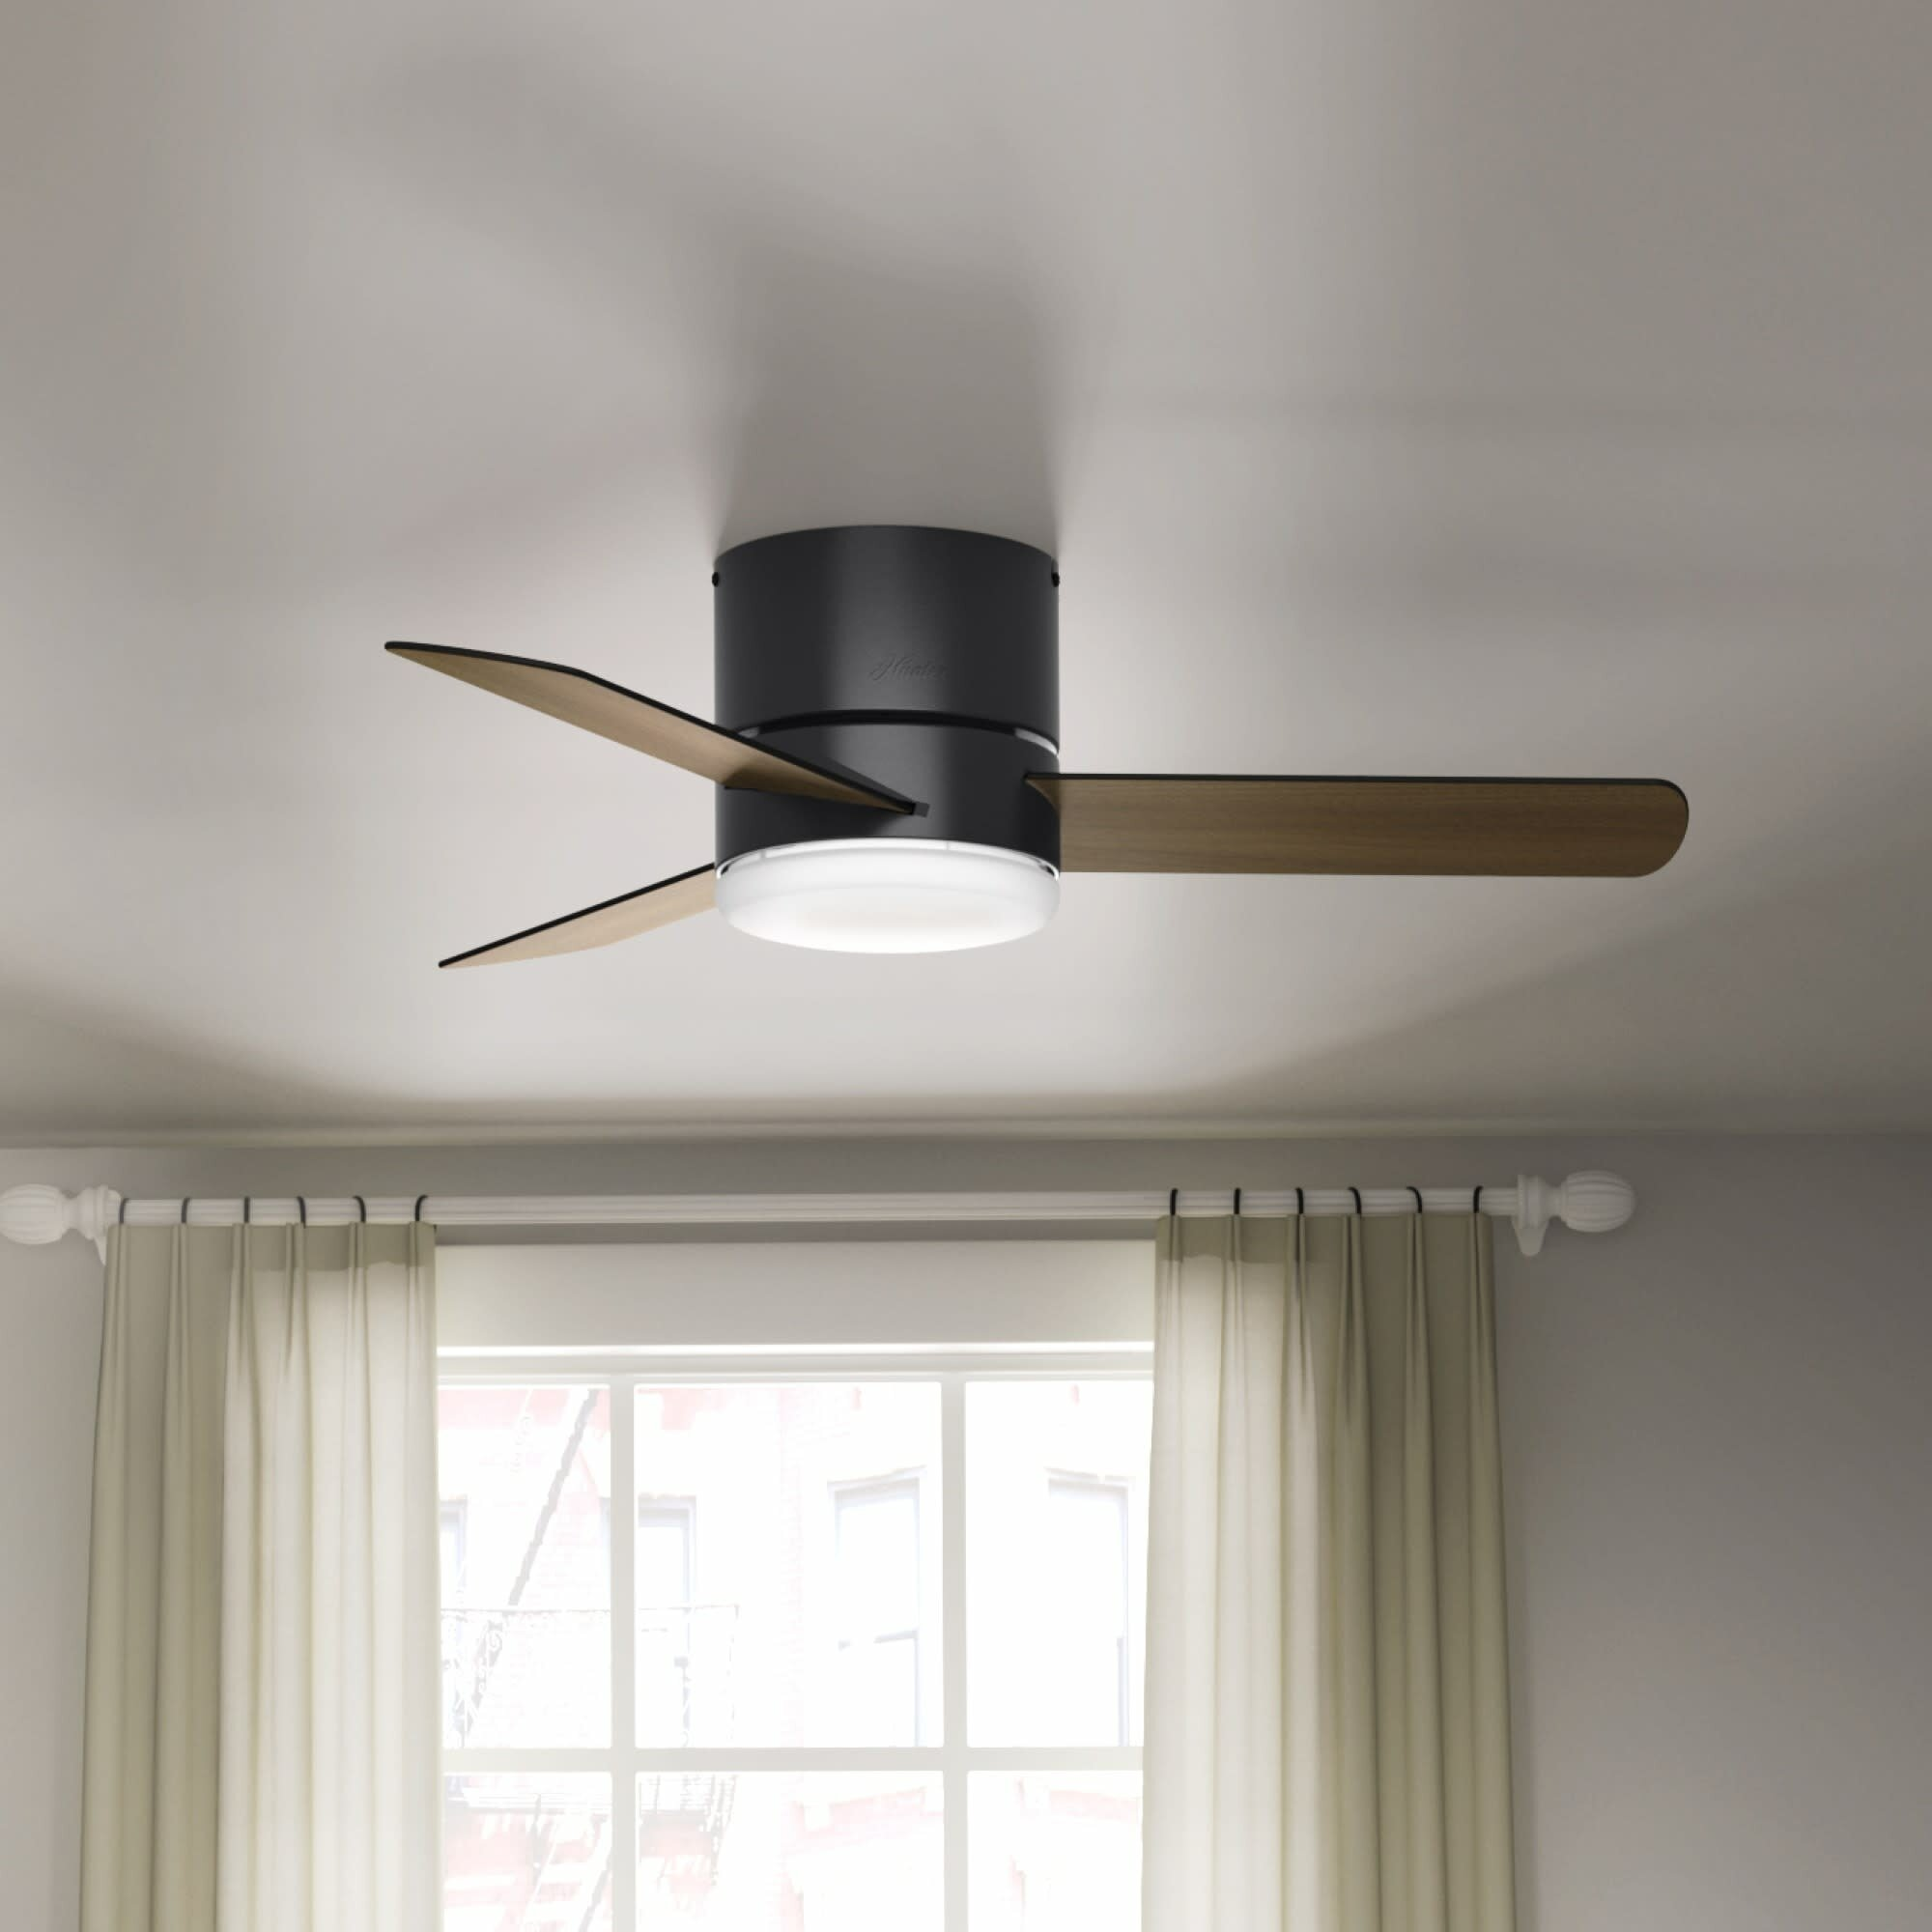 Hunter Fan 44 Minimus 3 Blade Flush Mount Ceiling Fan With Remote Control And Light Kit Included Reviews Wayfair